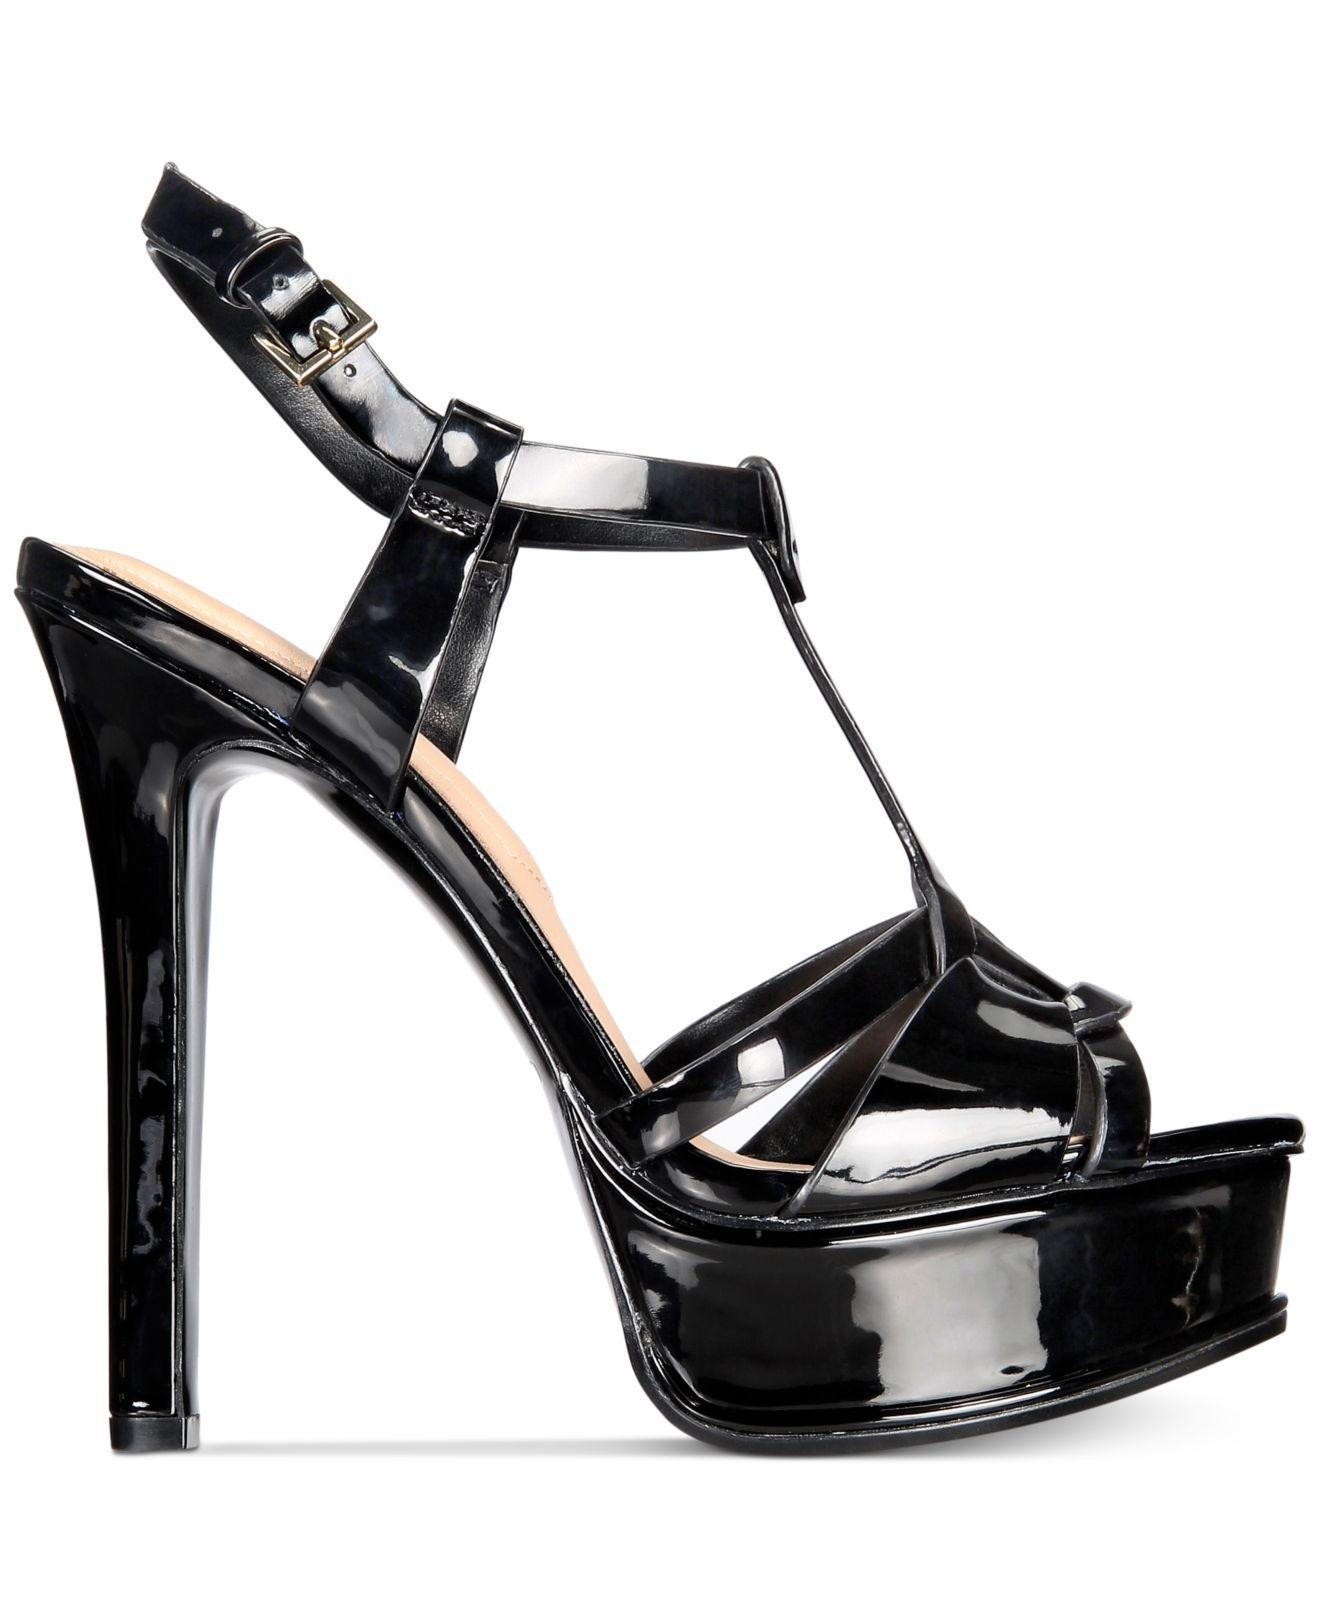 db492d6d24e ALDO - Black Chelly Platform Dress Sandals - Lyst. View fullscreen